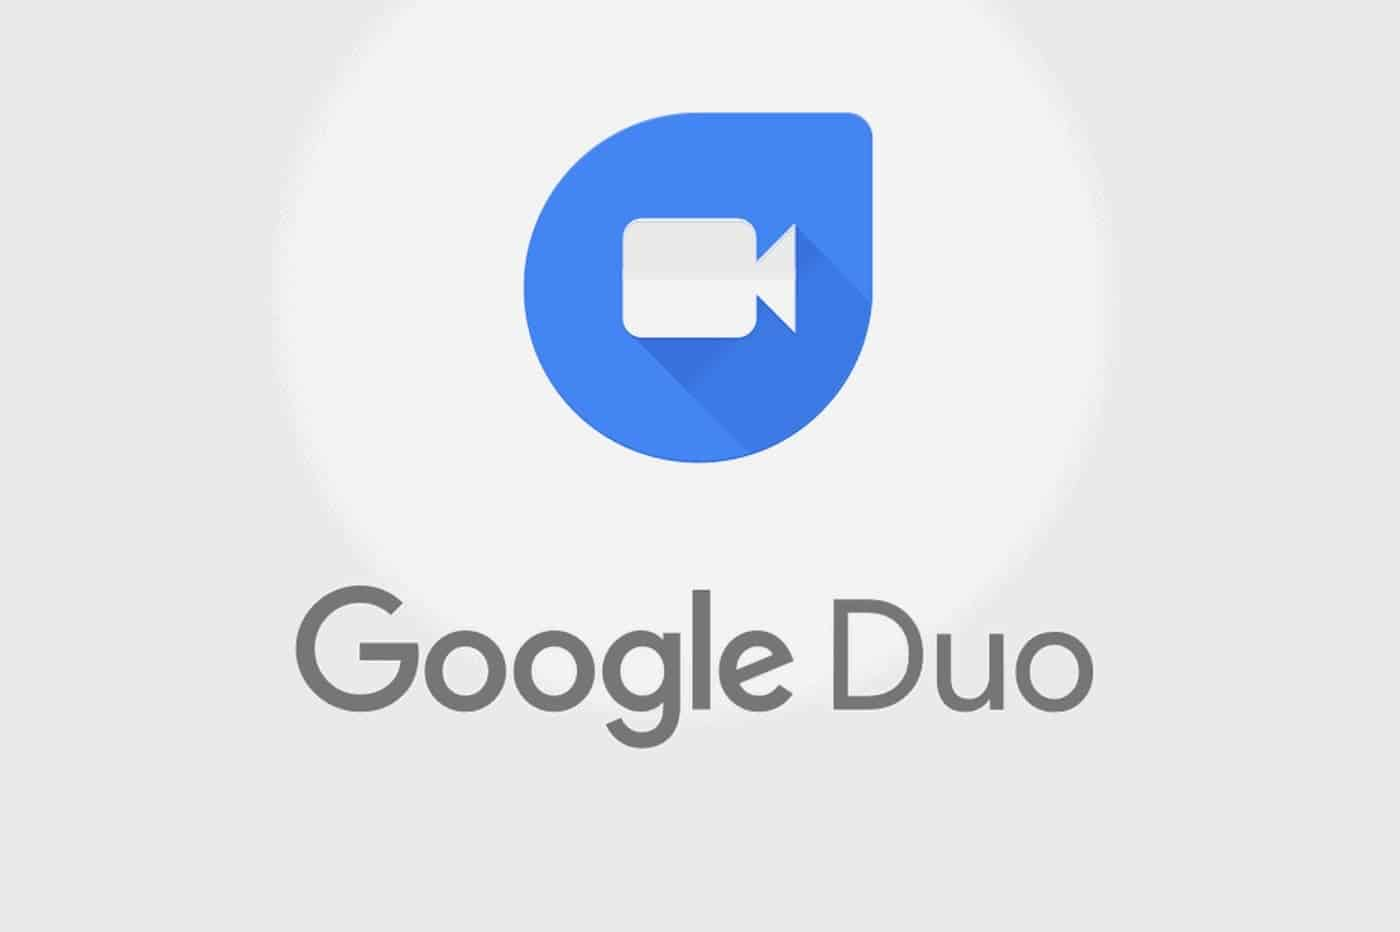 Google Duo: Users Can Now Video Call 12 People At A Time